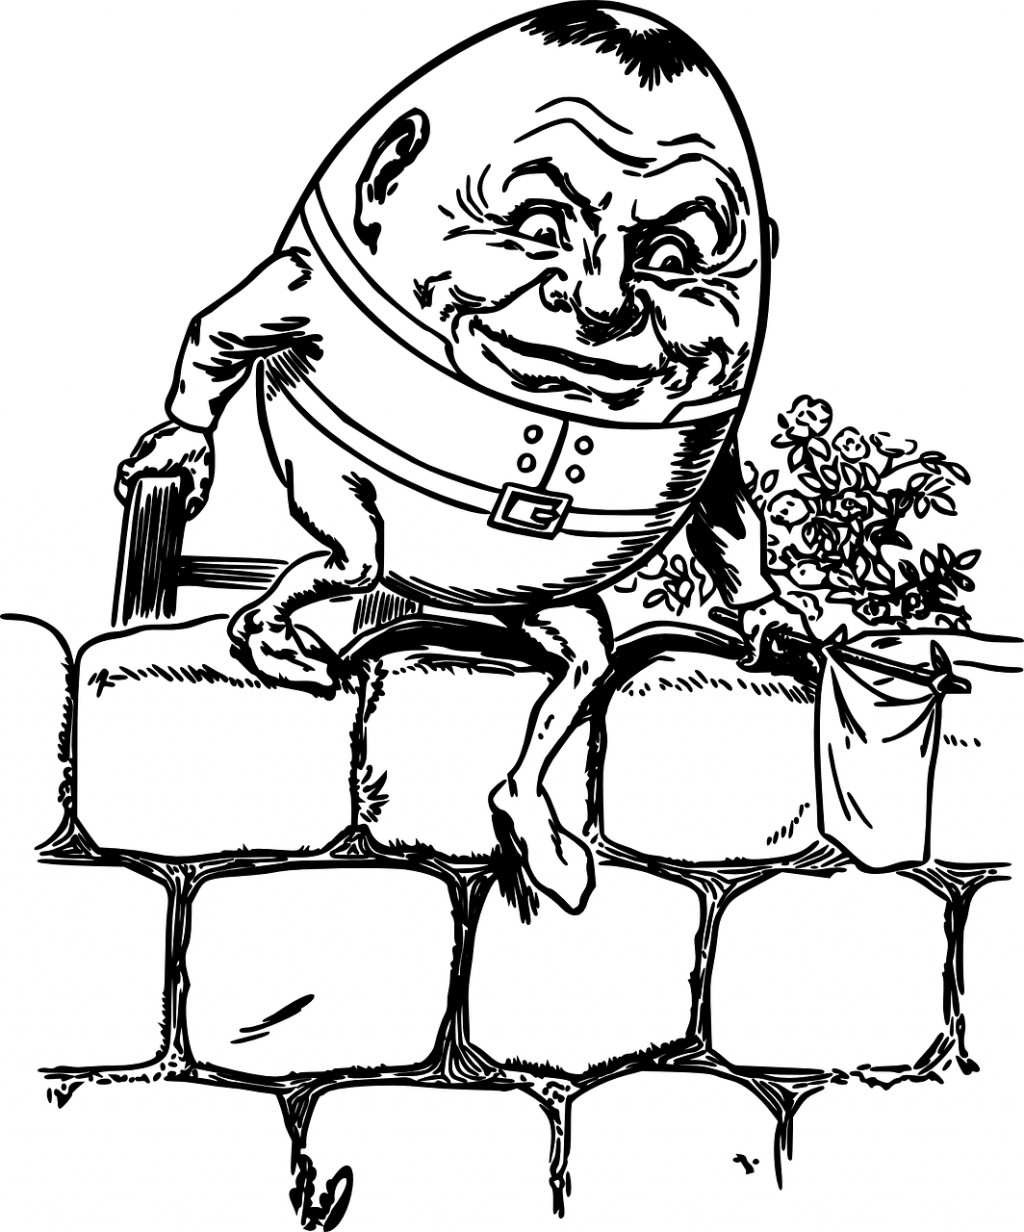 Humpty dumpty clipart meaning. Notorious nursery rhymes number